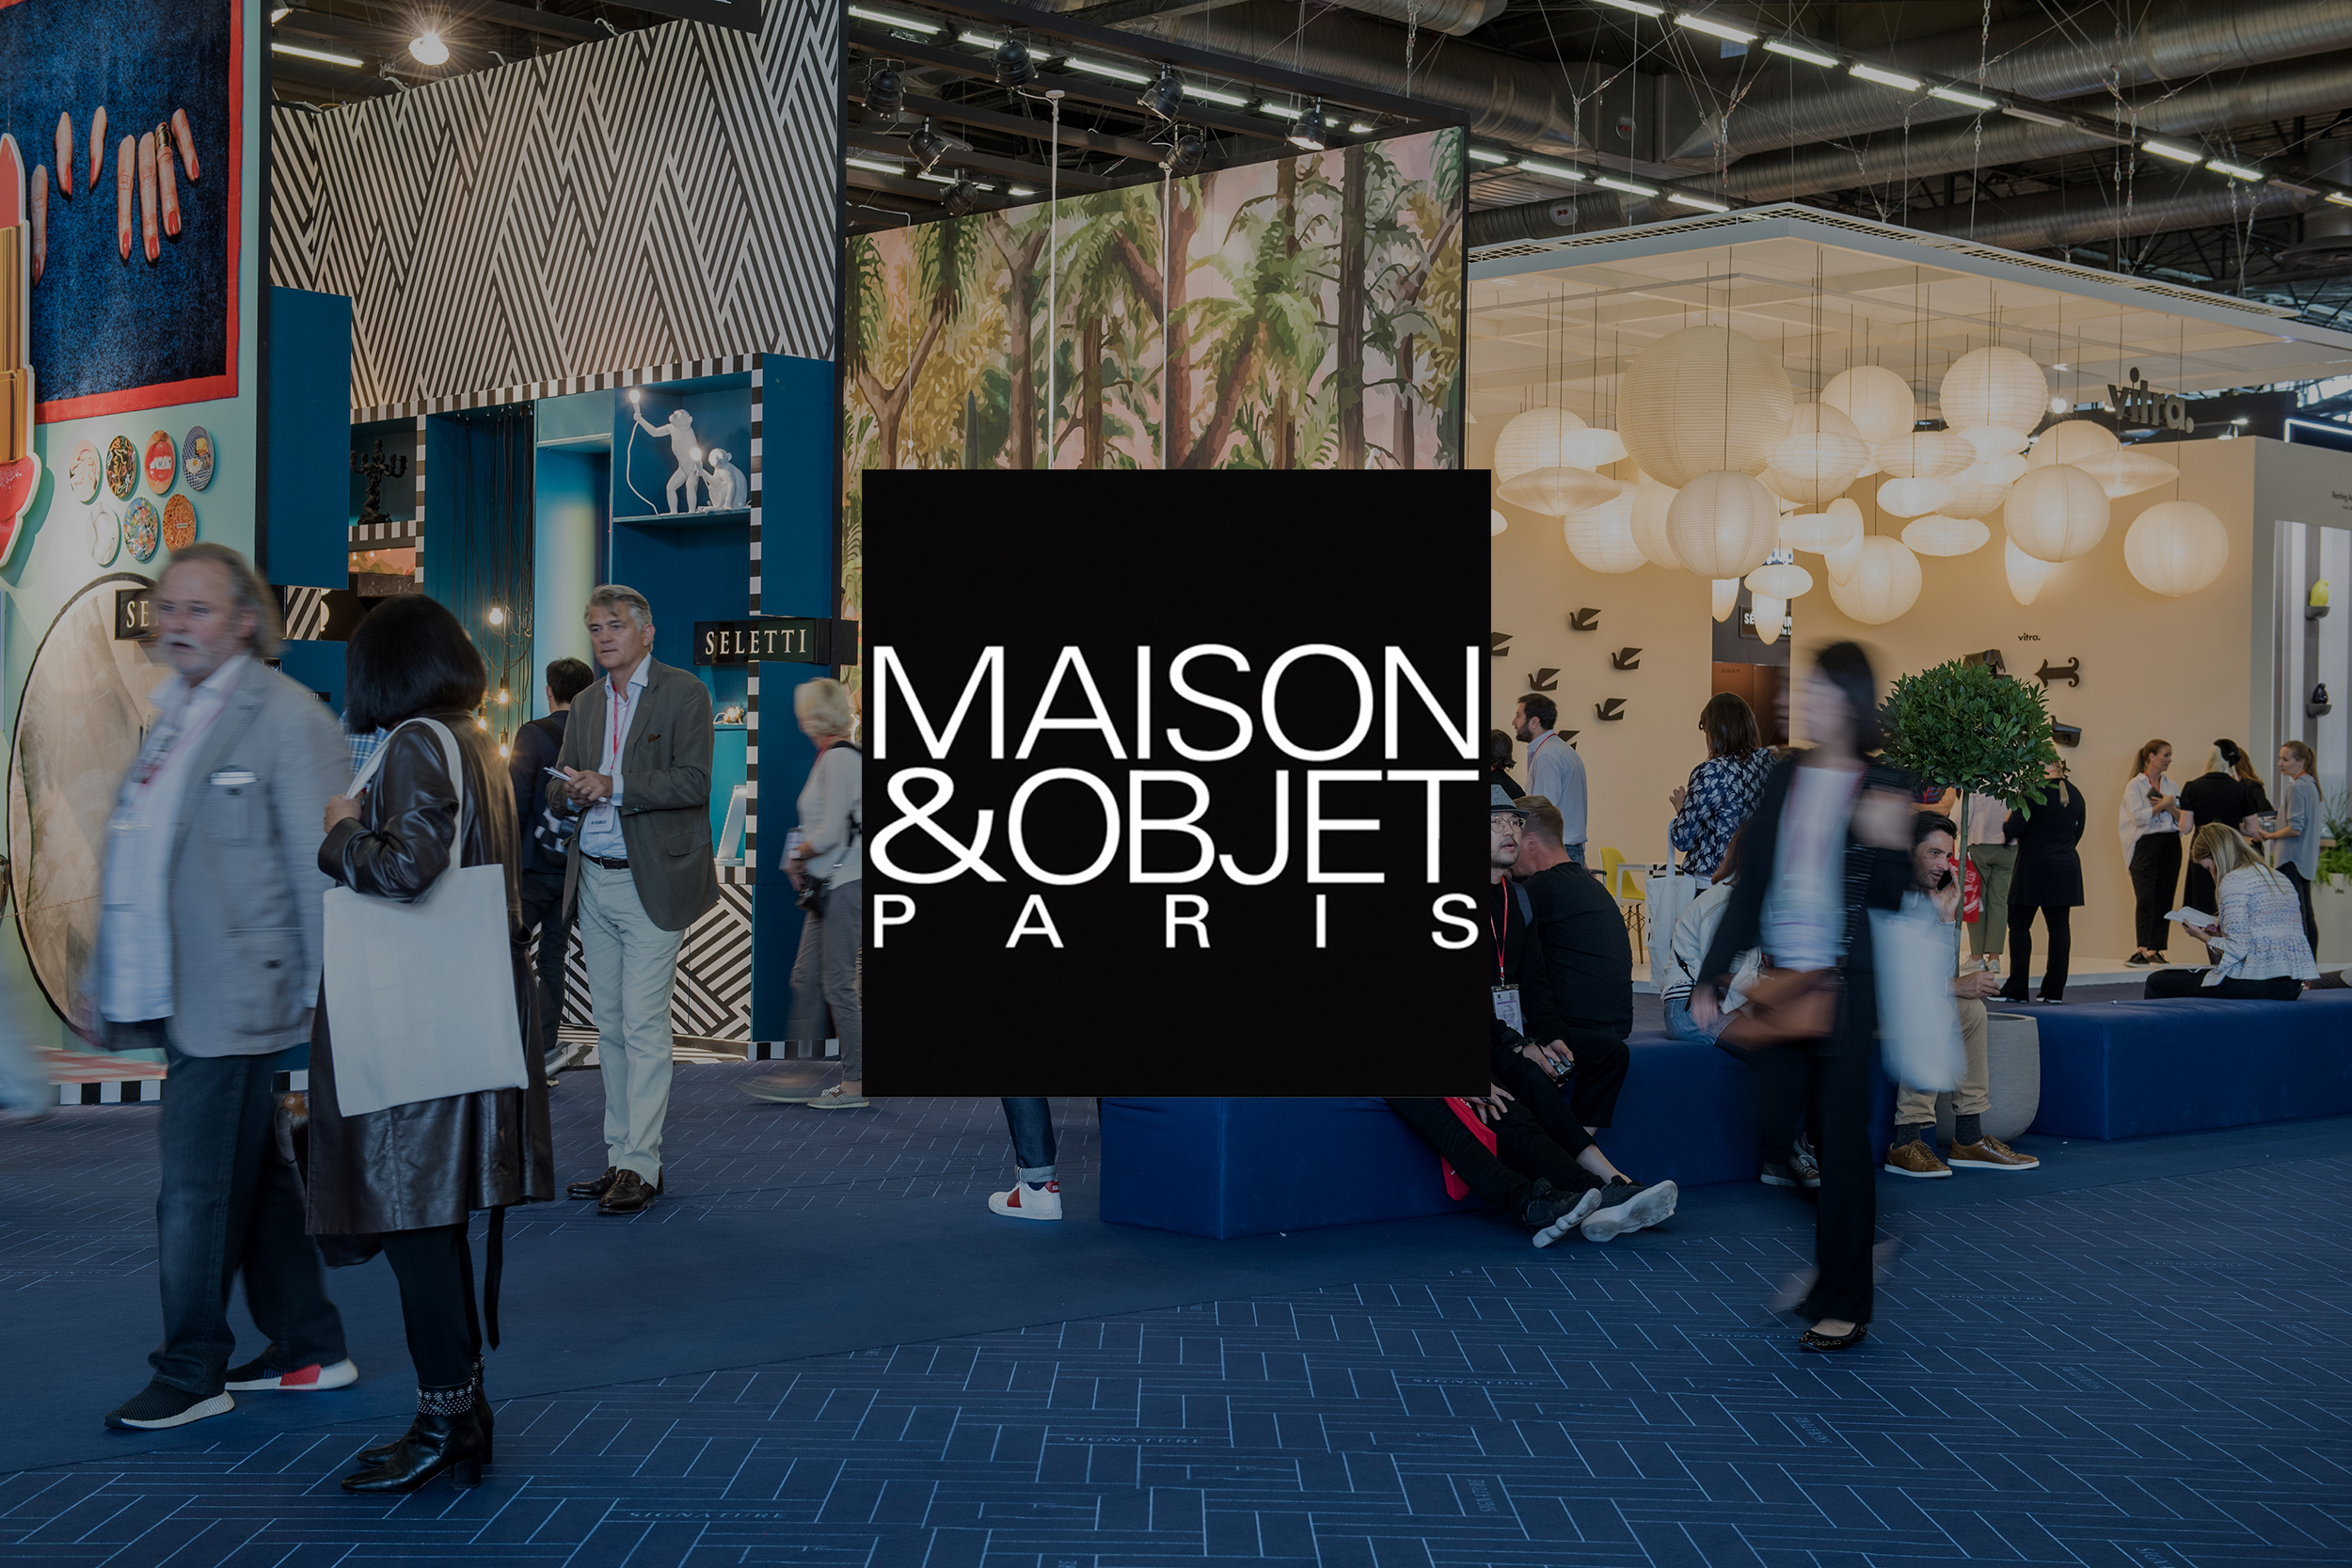 Maison&Objet tradeshow image for SBID interior design events blog post